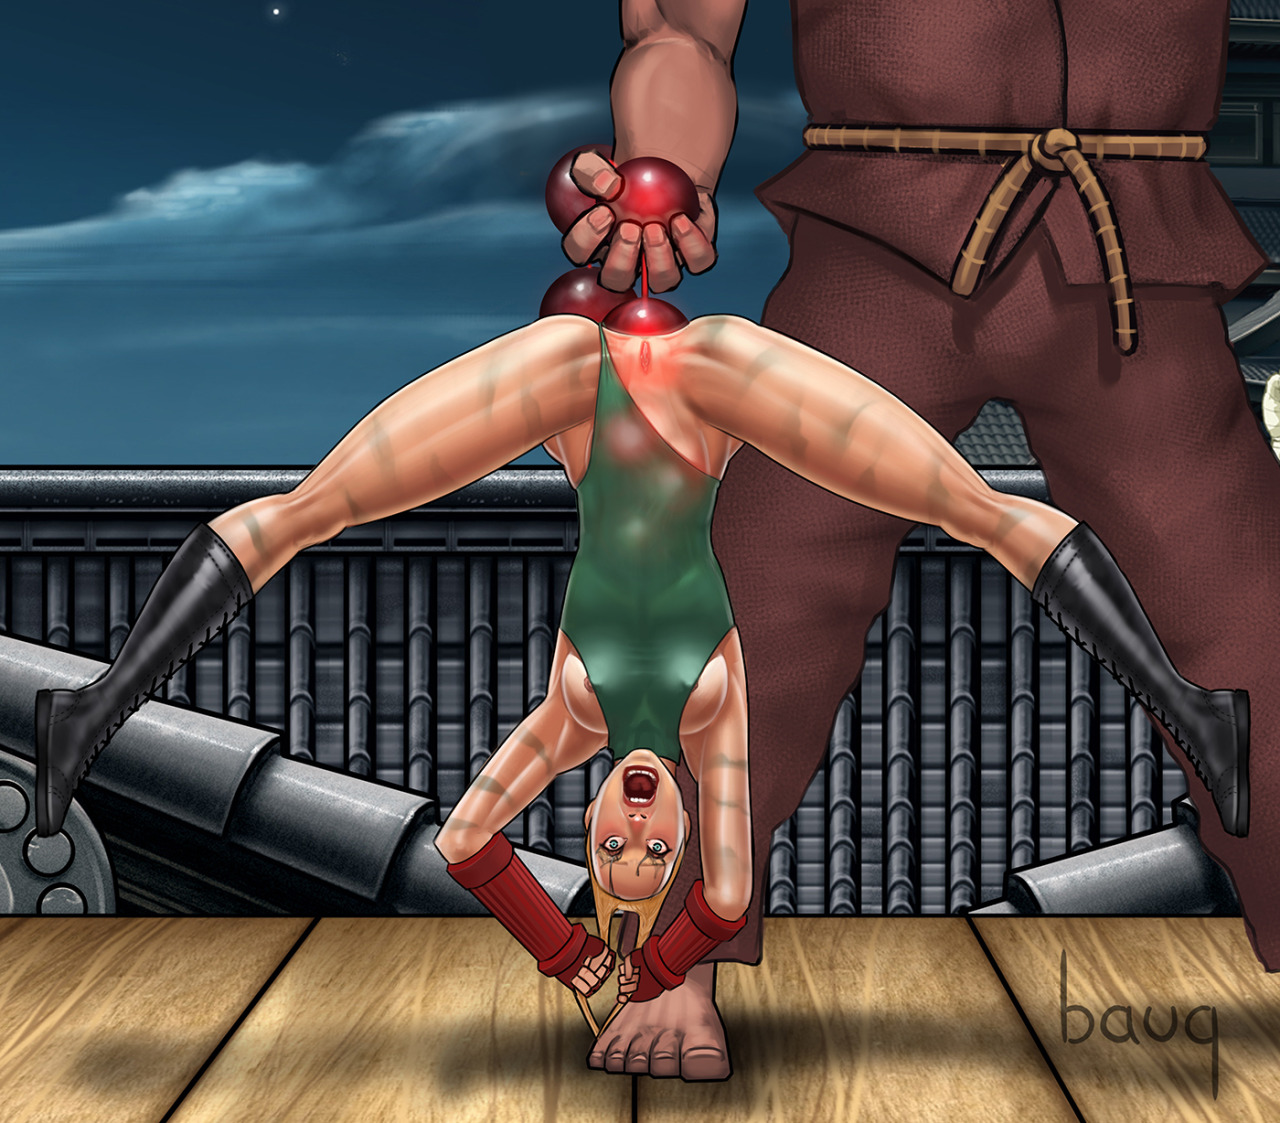 3d pics of street fighters porn fucks scenes